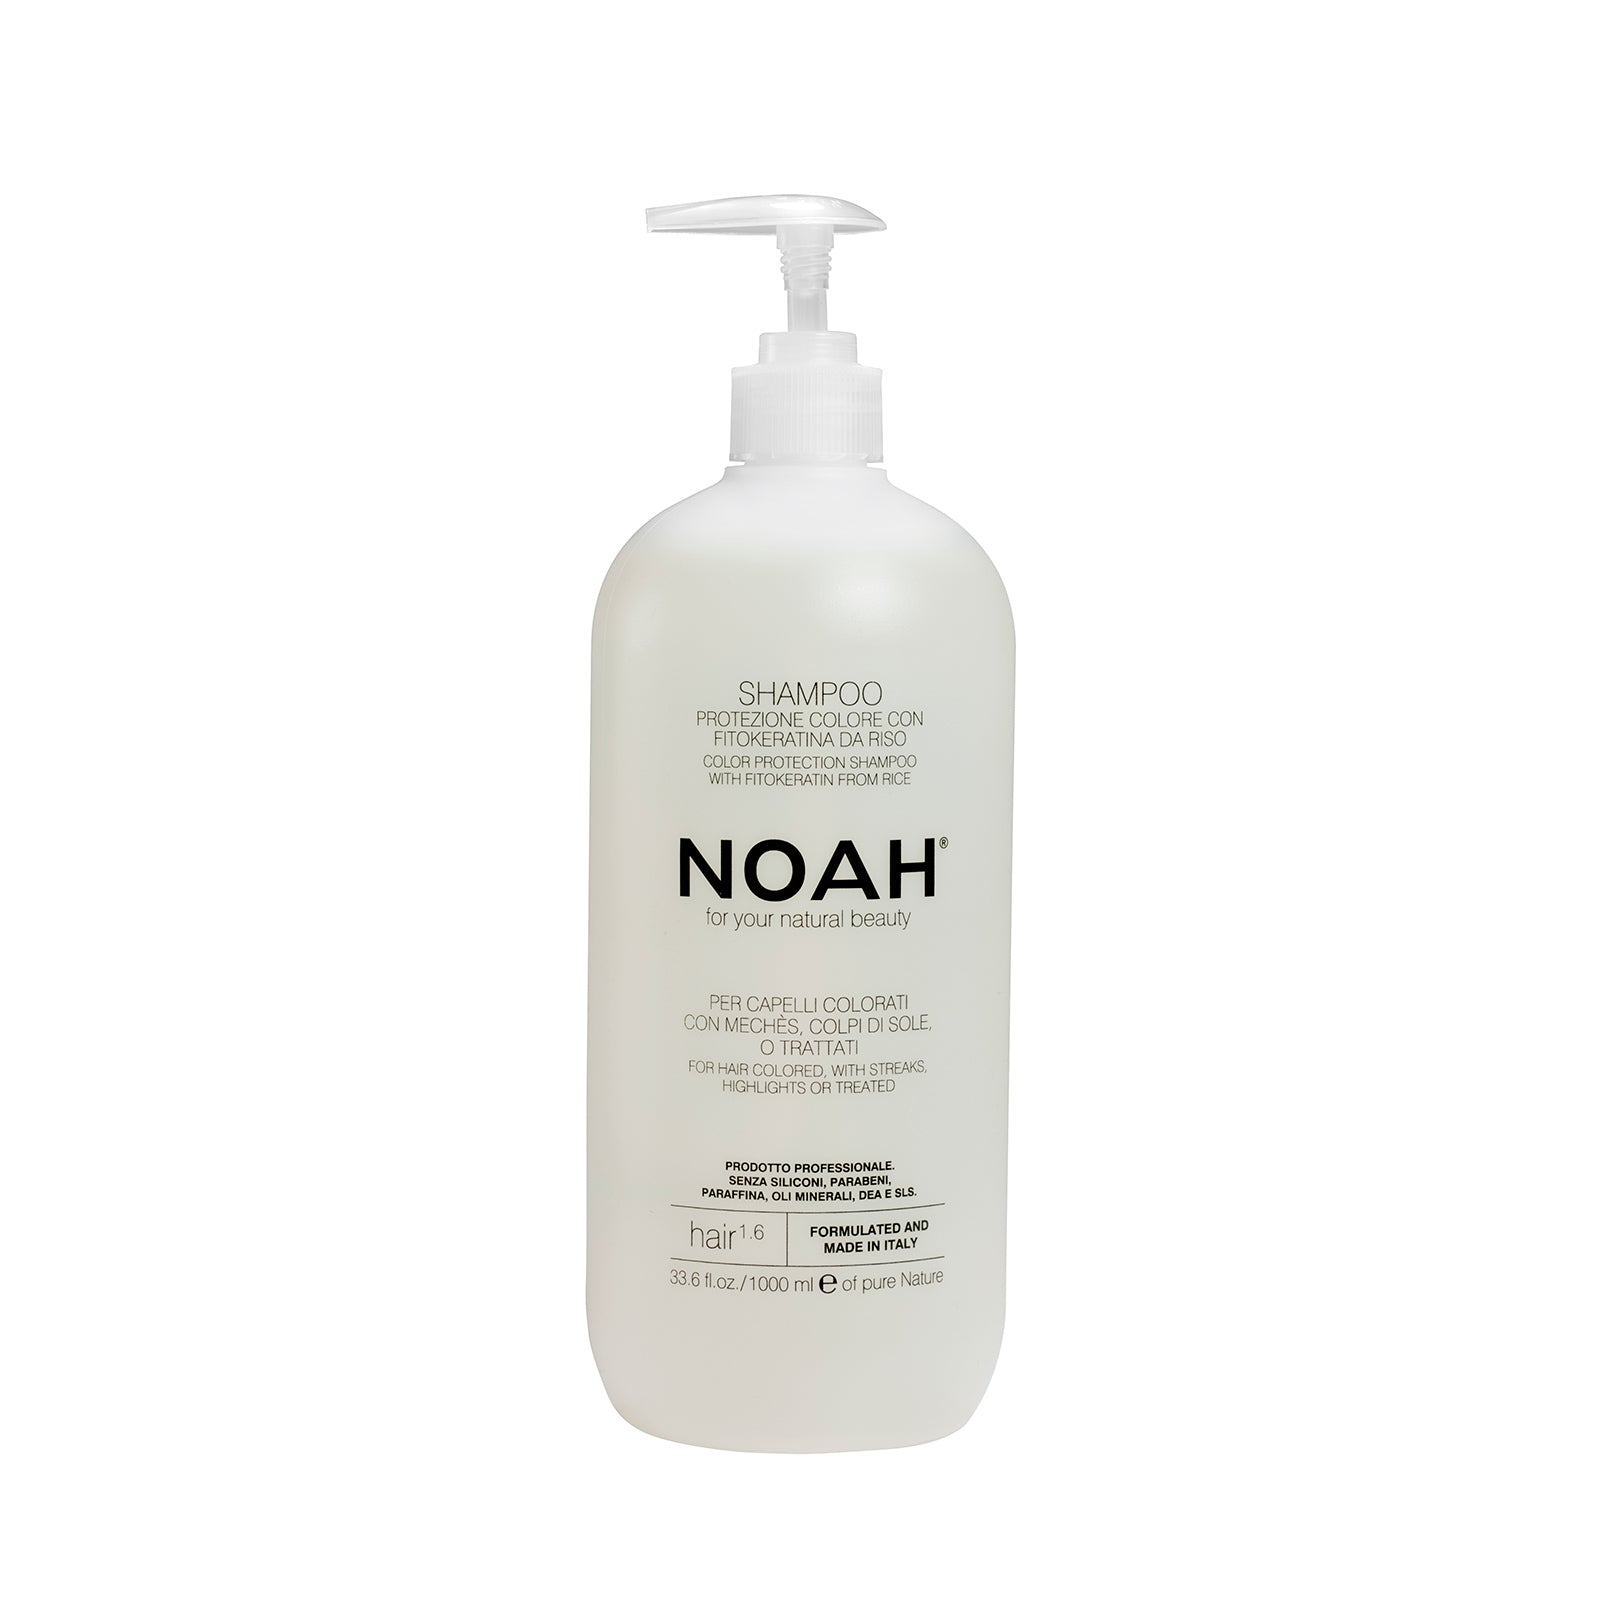 NOAH Natural Shampoo for coloured hair with streaks, highlights or treated- VÄRJÄTYILLE HIUKSILLE